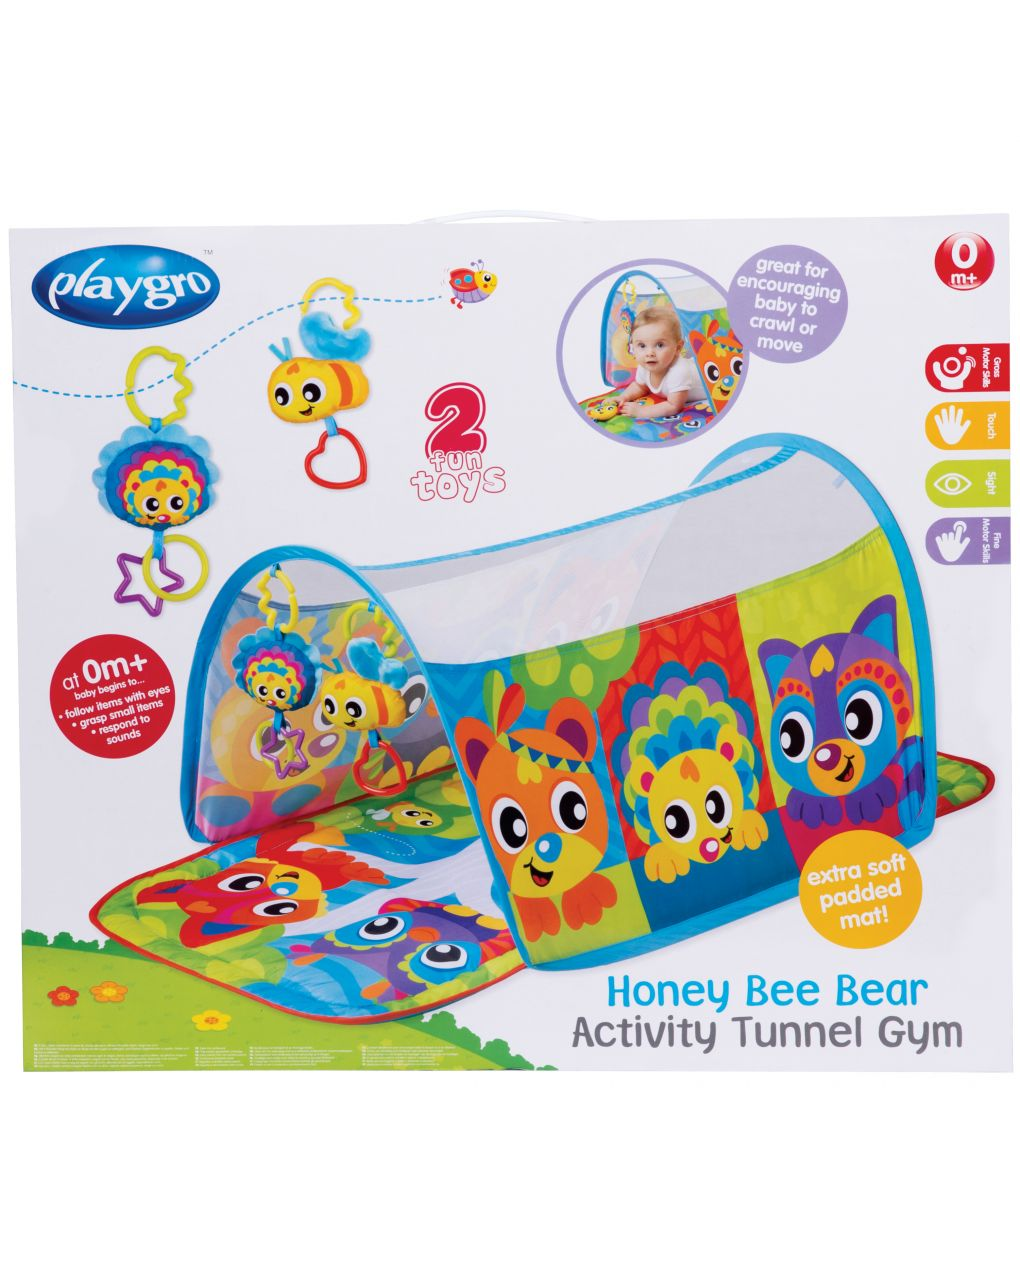 Playgro - honey bee bear activity tunnel gym - Playgro